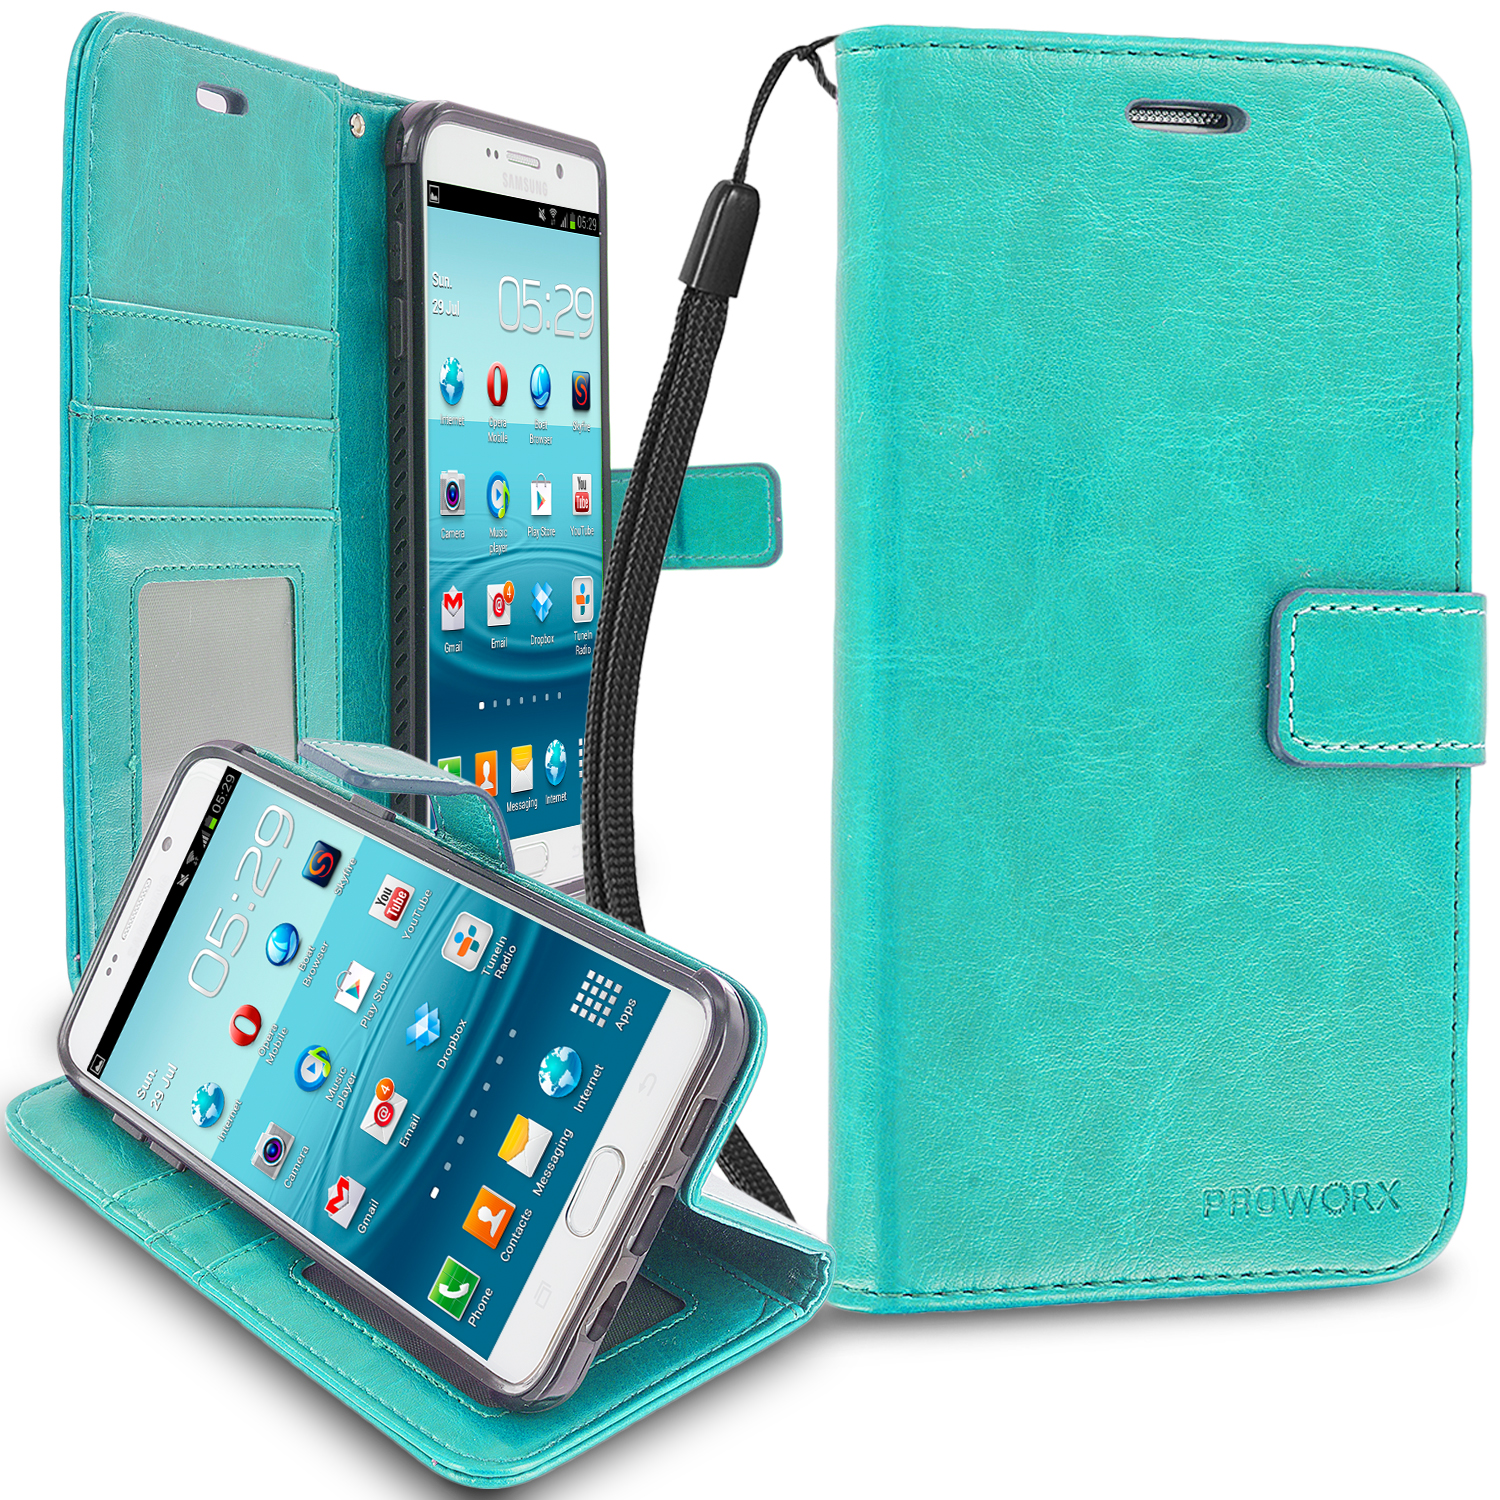 Samsung Galaxy S6 Edge Mint Green ProWorx Wallet Case Luxury PU Leather Case Cover With Card Slots & Stand